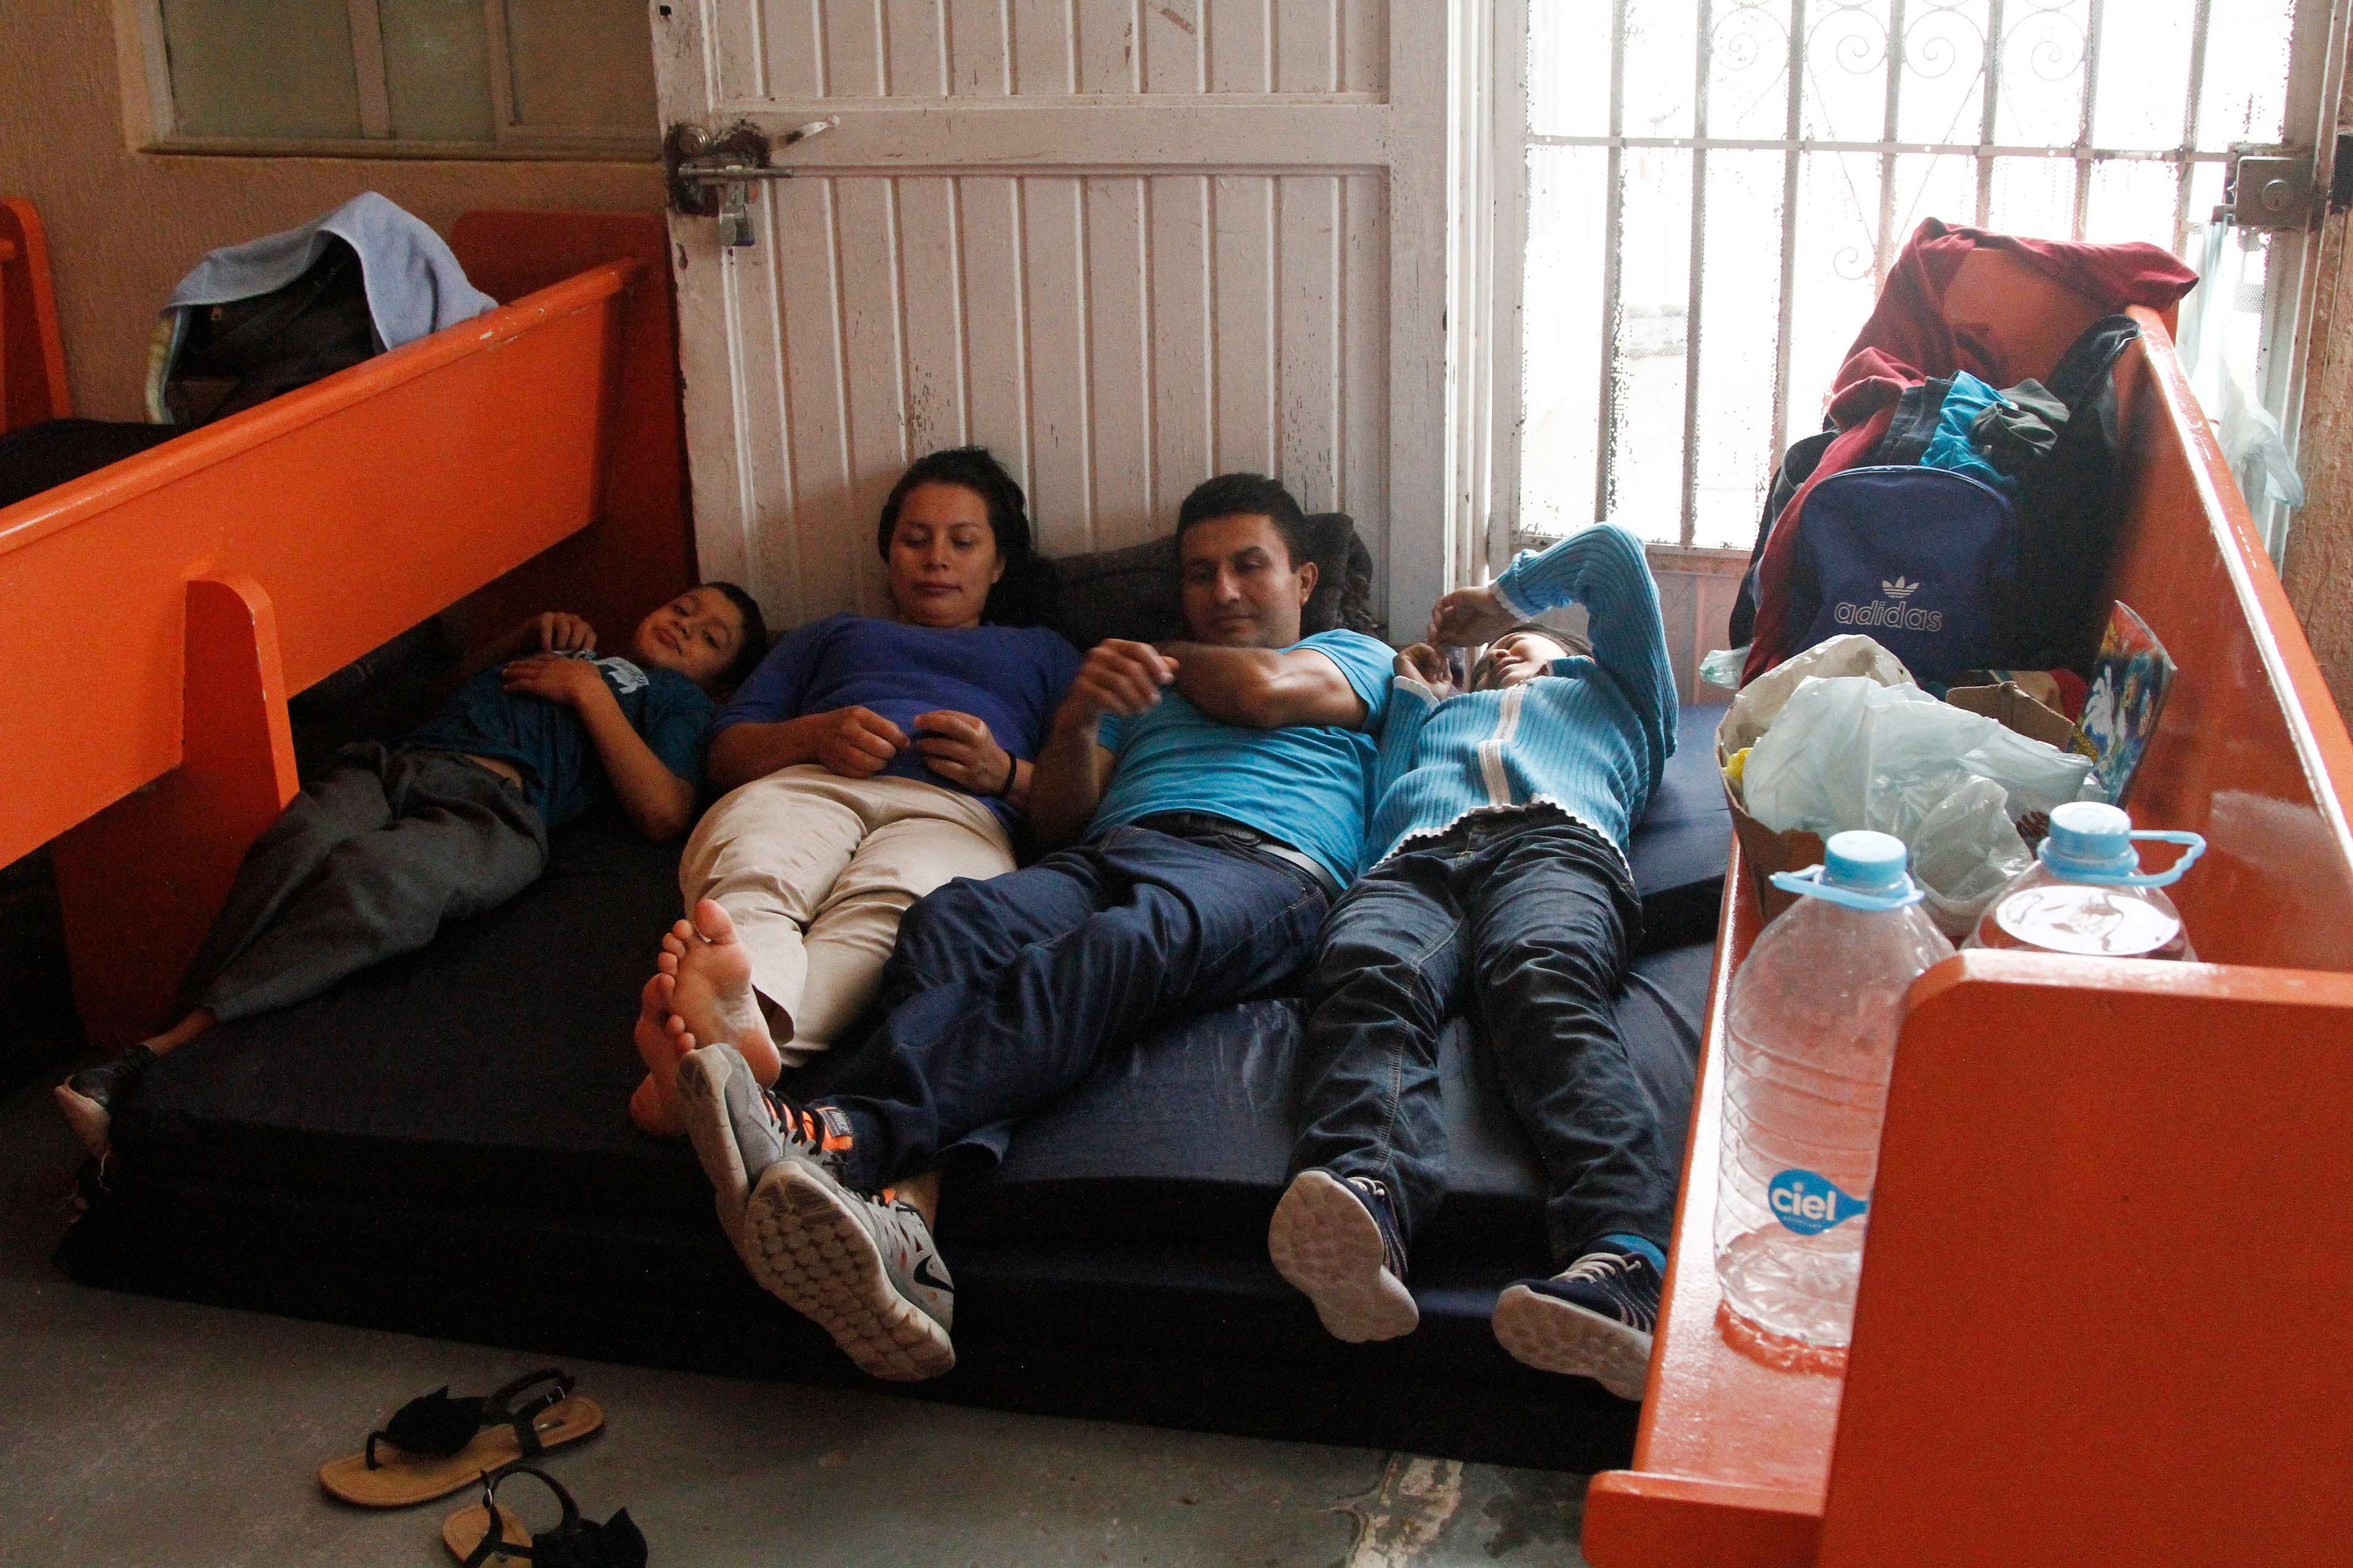 A Salvadoran family stays at the Buen Pastor migrant shelter in Ciudad Juárez, Mexico, in June 2019 while they wait for their asylum cases to be heard in US immigration court.